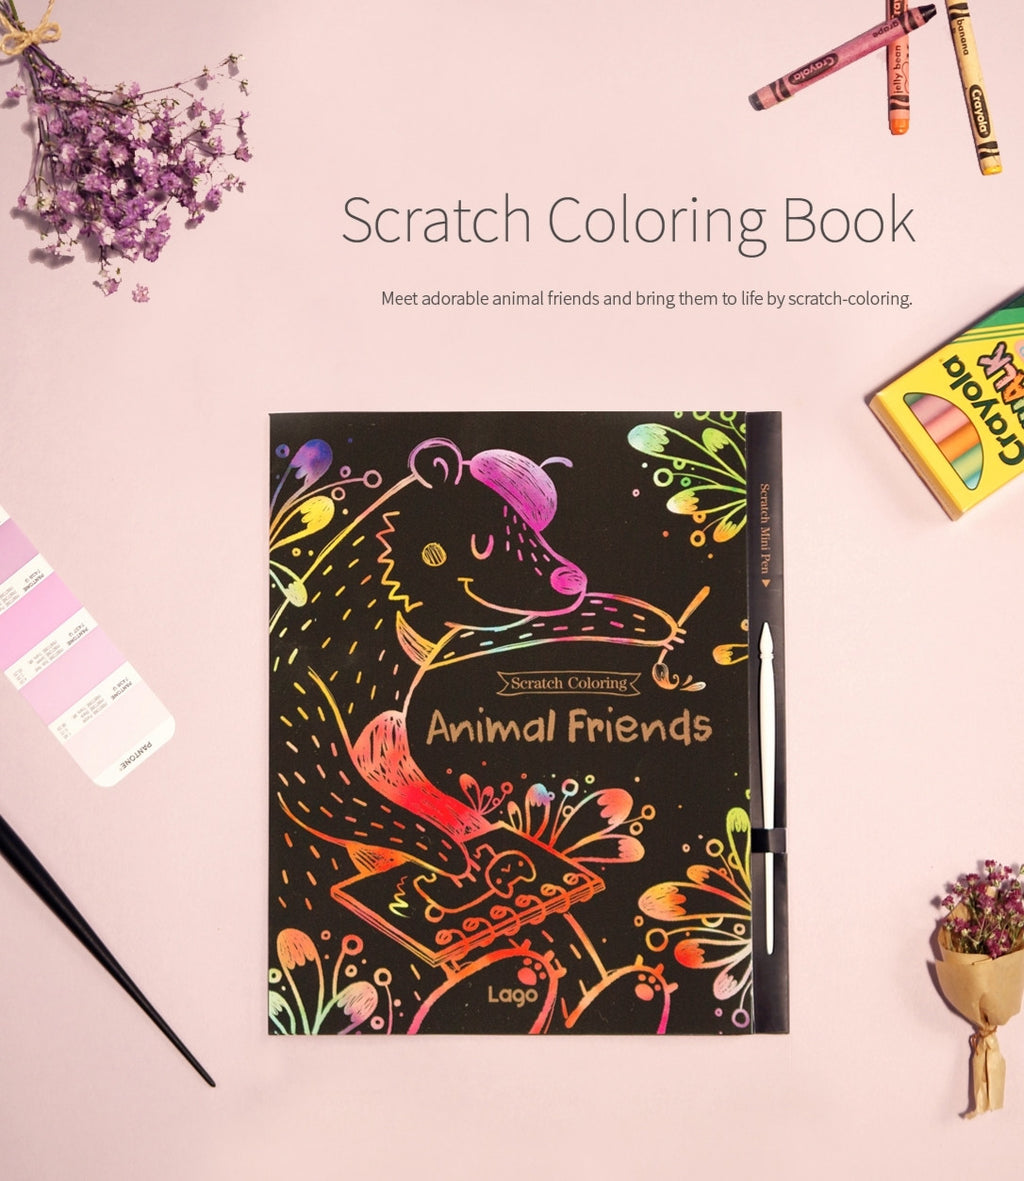 Scratch Coloring Book - Animal Friends